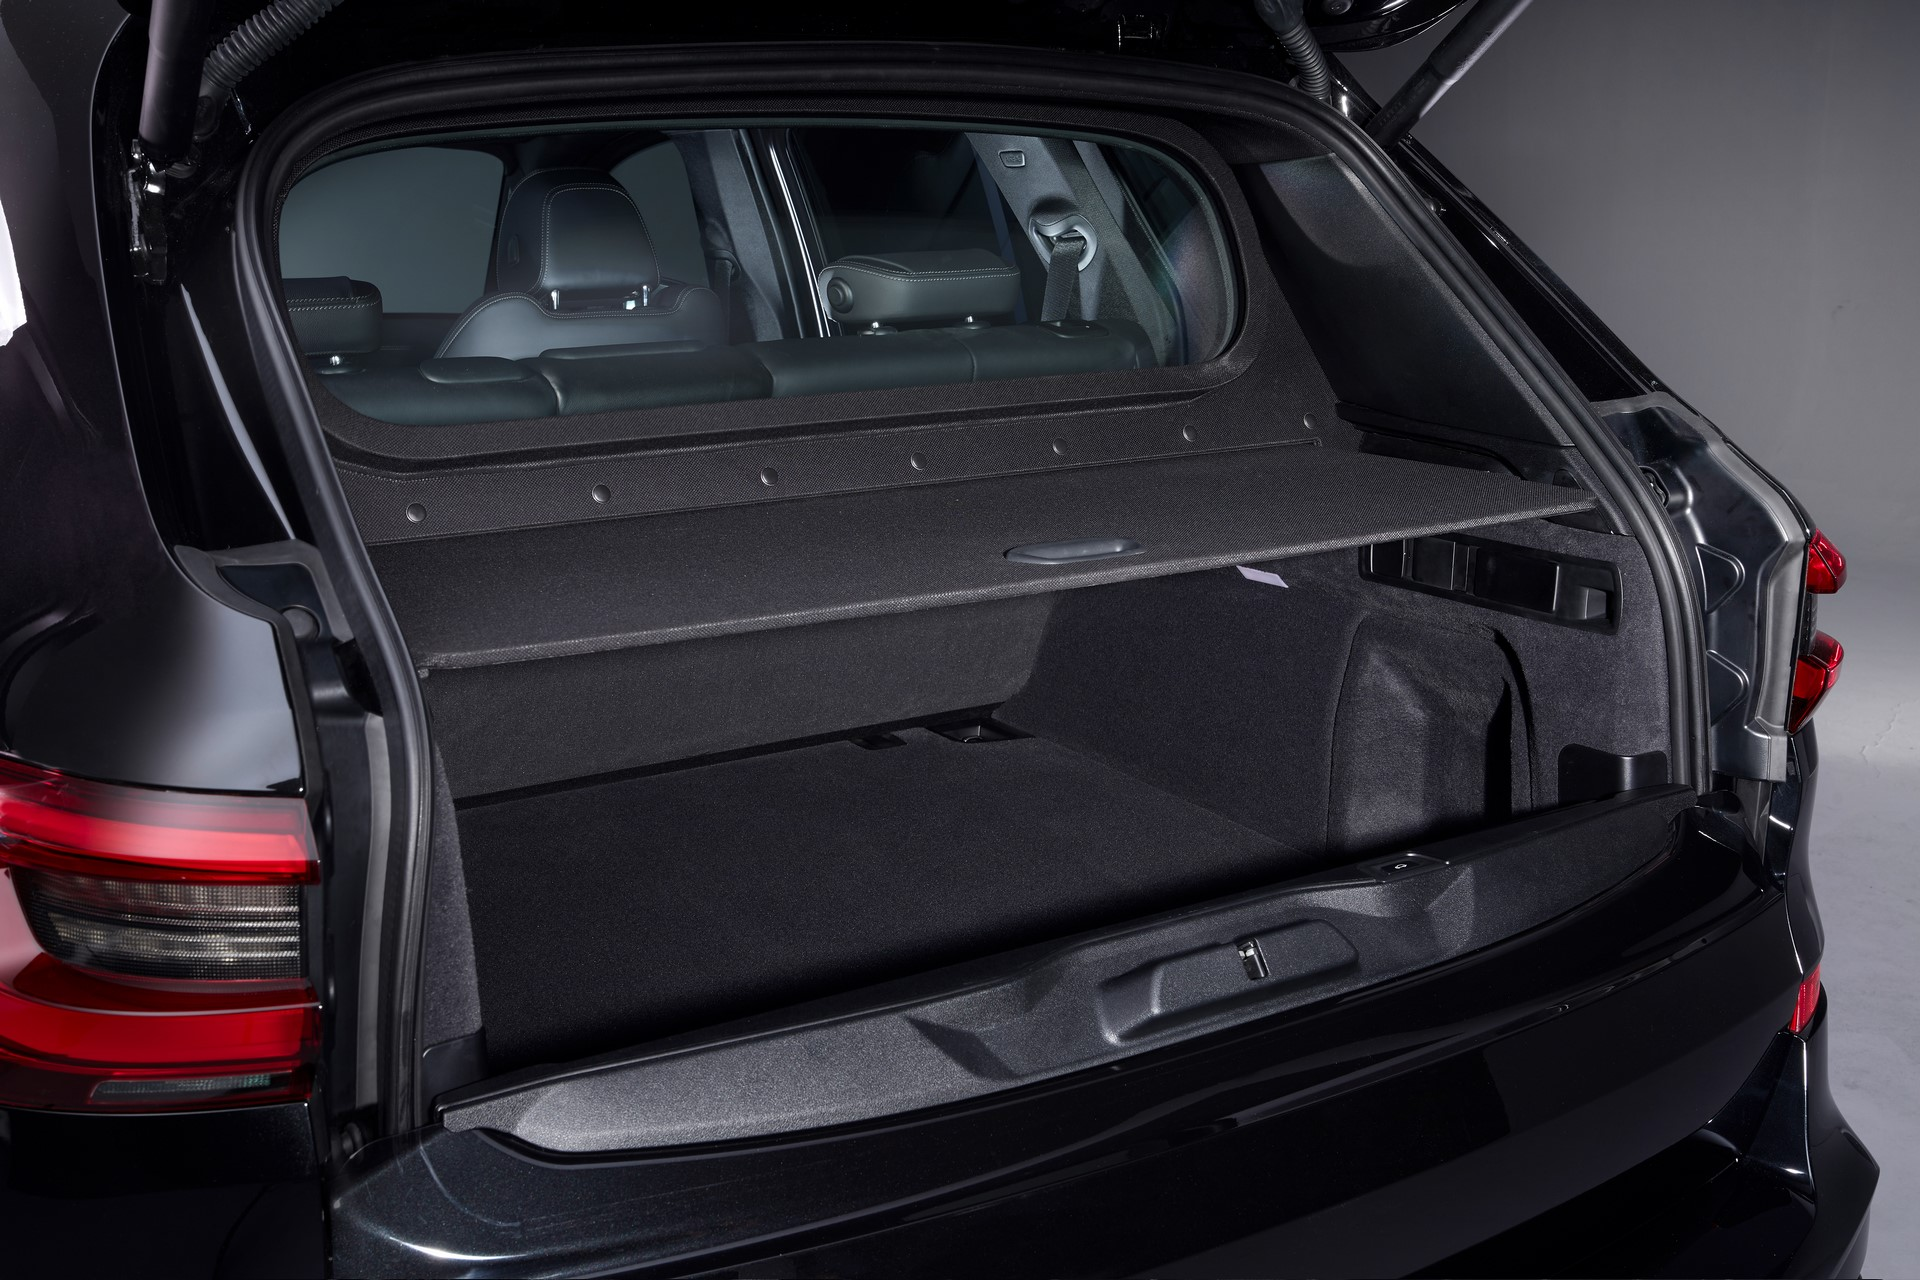 BMW-X5-Protection-VR6-26